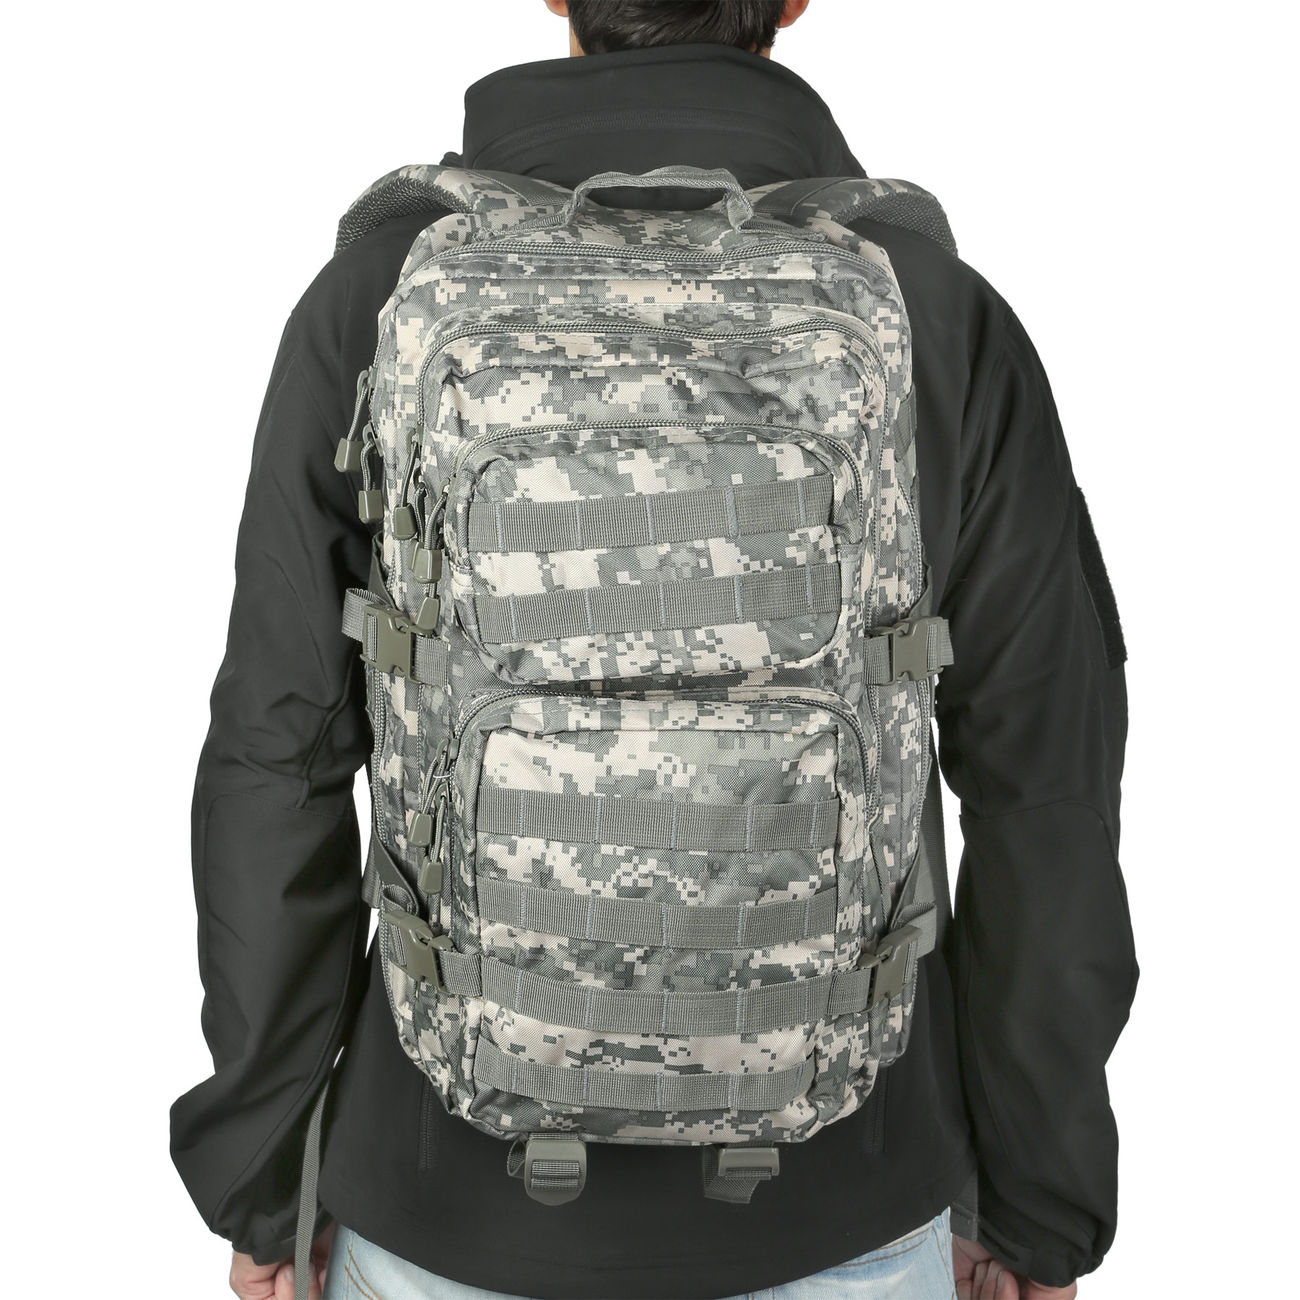 Mil-Tec Rucksack US Assault Pack II 40 Liter at-digital 4